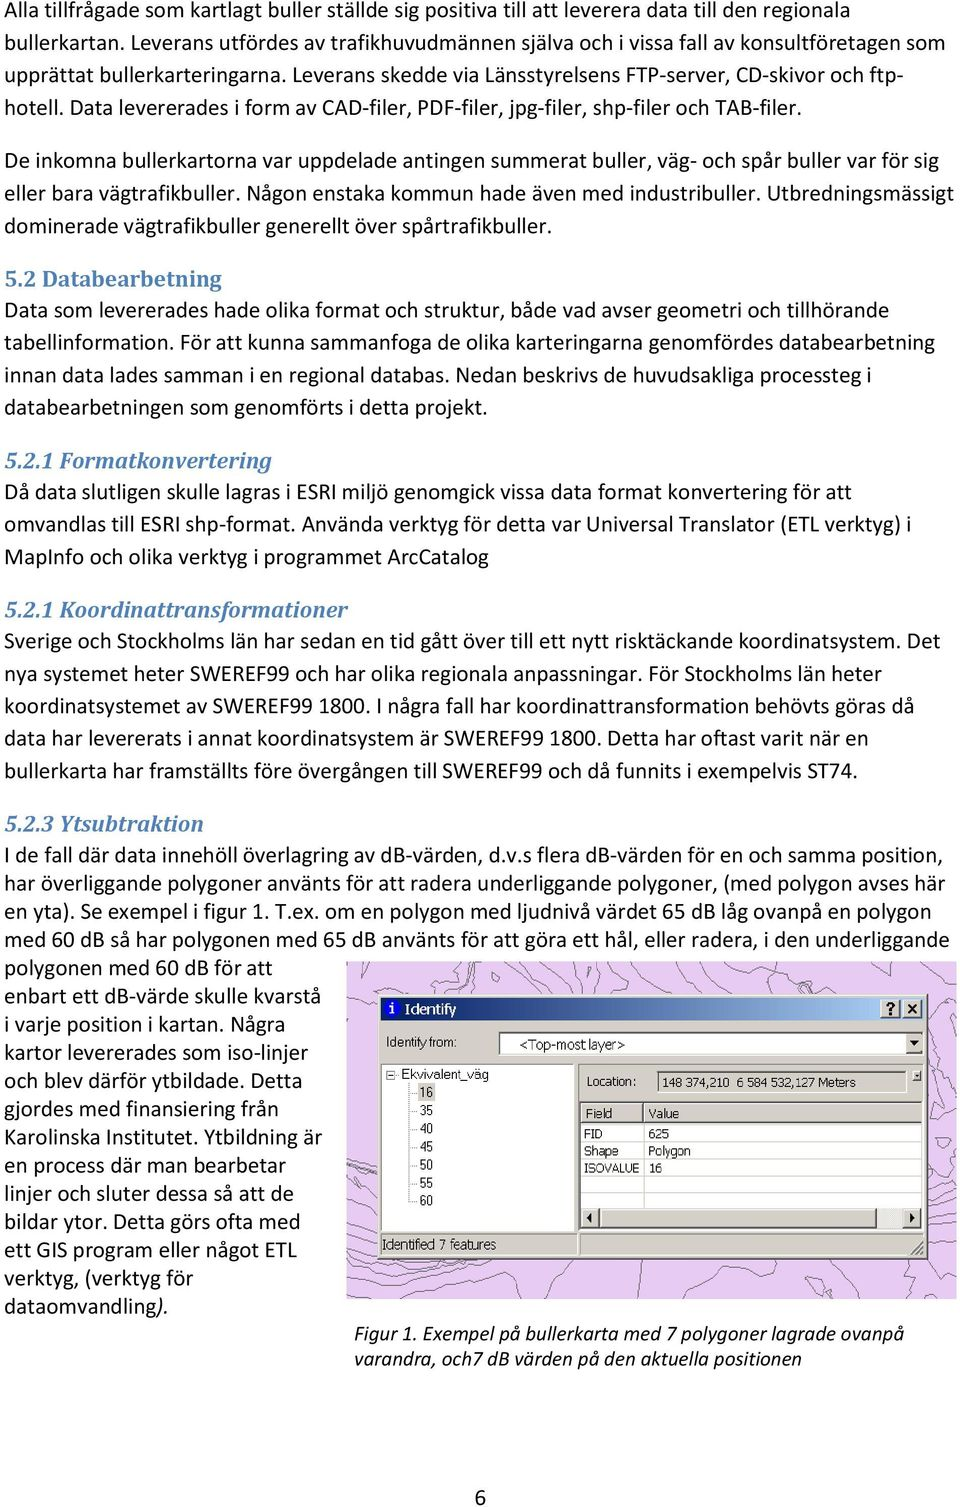 Data levererades i form av CAD-filer, PDF-filer, jpg-filer, shp-filer och TAB-filer.